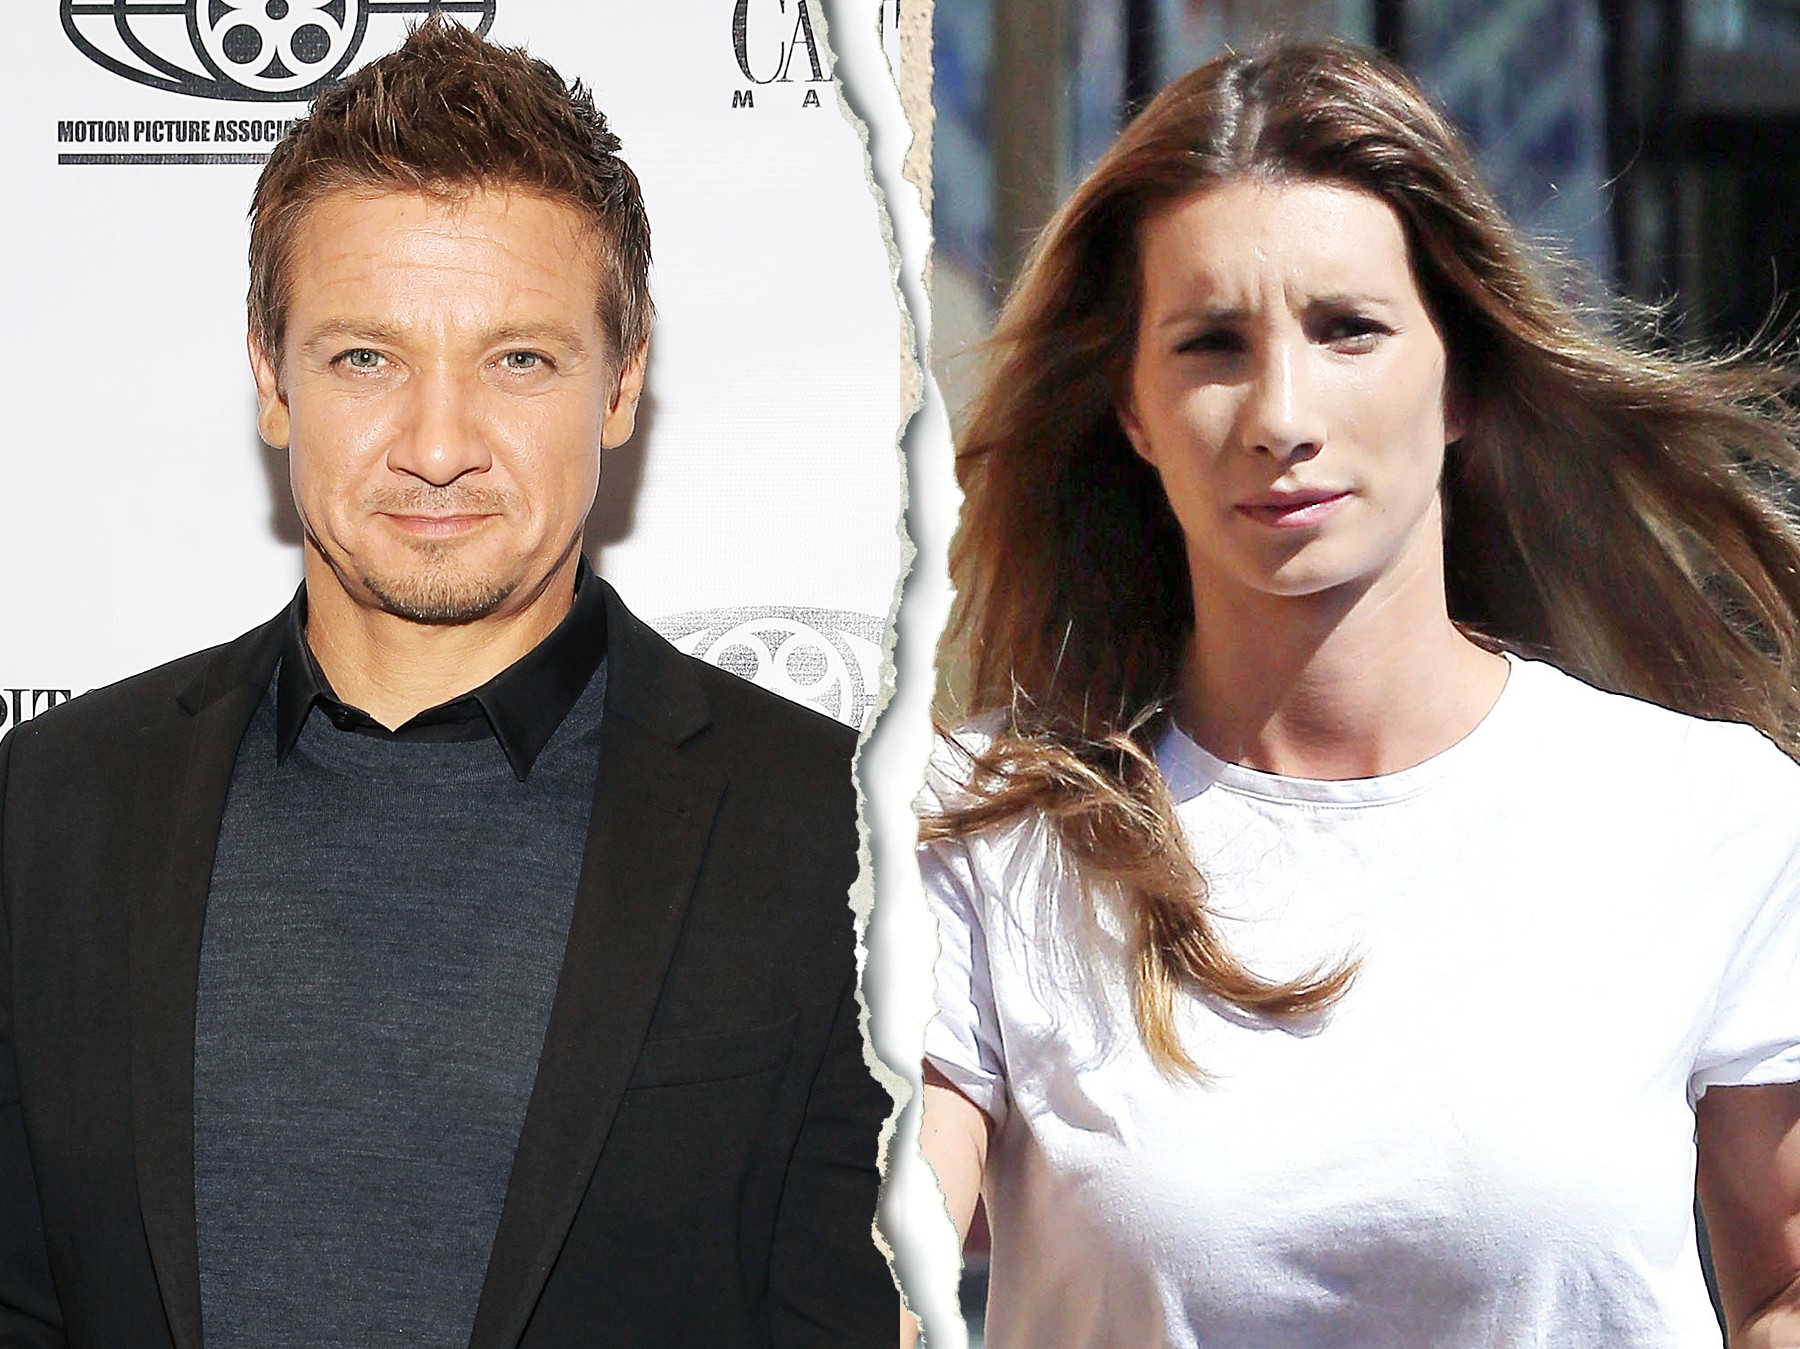 Avengers Star Jeremy Renner's Ex-Wife Accuses Him Of Threatening To Kill Her